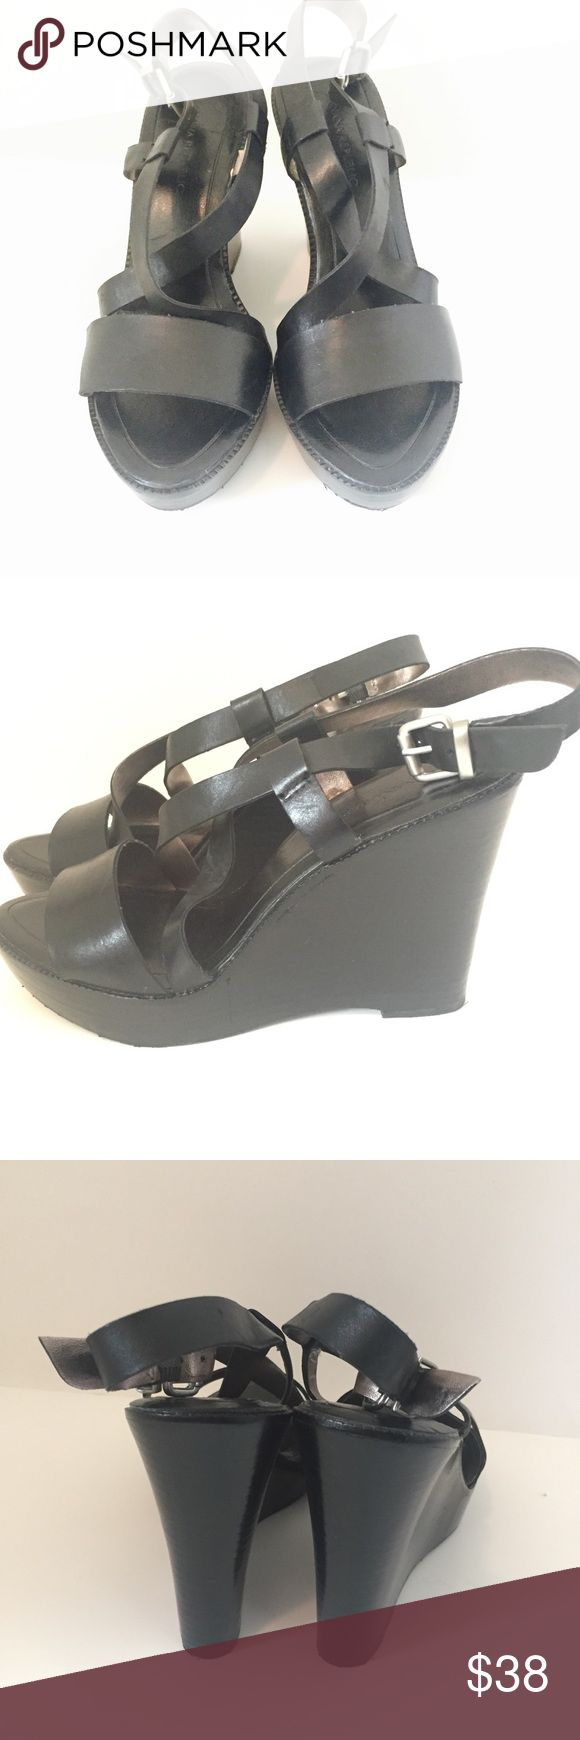 "💞Banana Republic Wedges💞 / Size 6 💞Banana Republic Wedges💞 / Size 6 / Brand New! never worn! / Wedge measures 4"" off the ground at highest point/ Genuine Leather/ Great pair of shoes! Banana Republic Shoes Wedges"